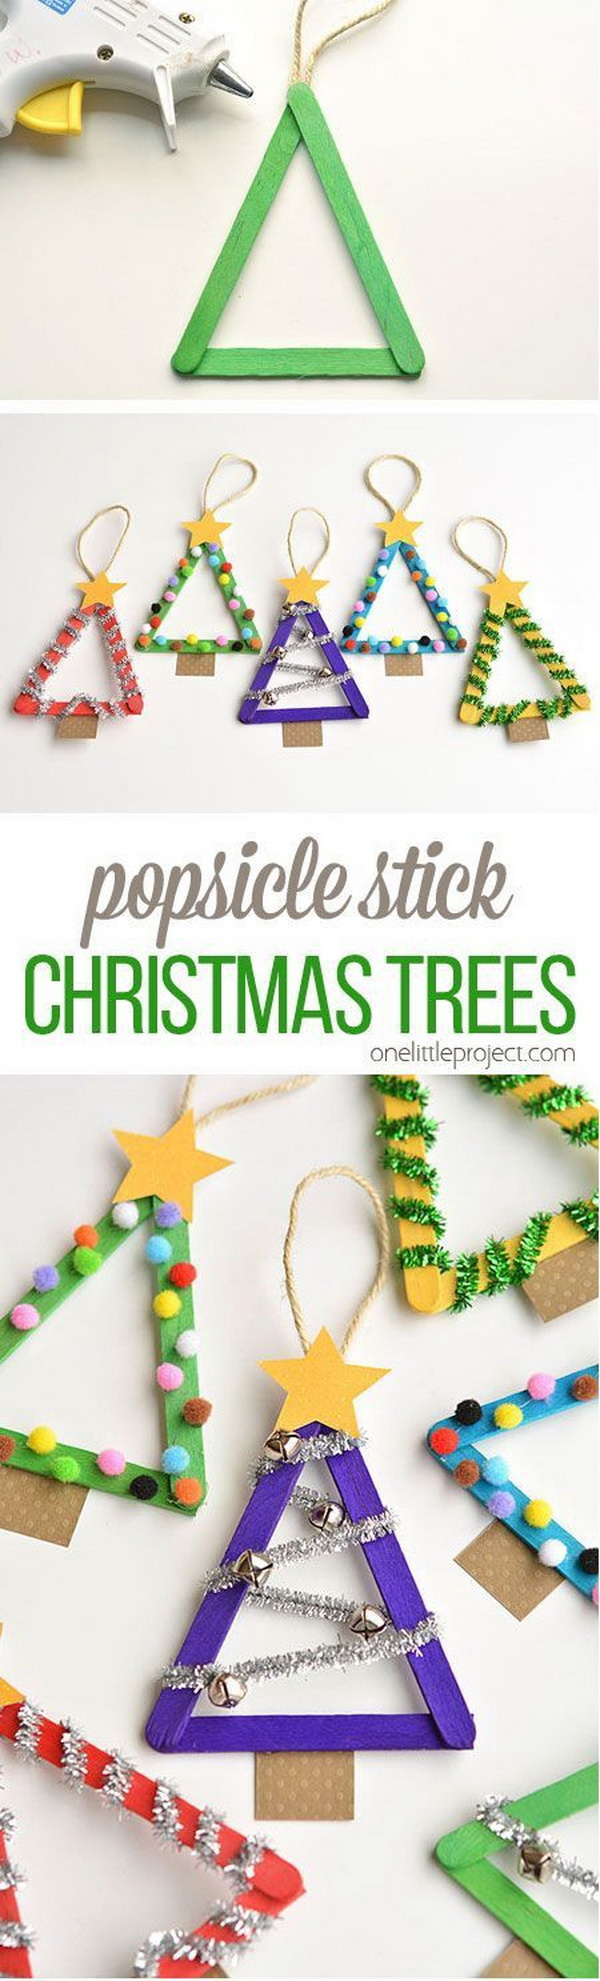 Popsicle Stick Christmas Trees. Easy and Fun DIY Christmas crafts for You and Your Kids to Have Fun.